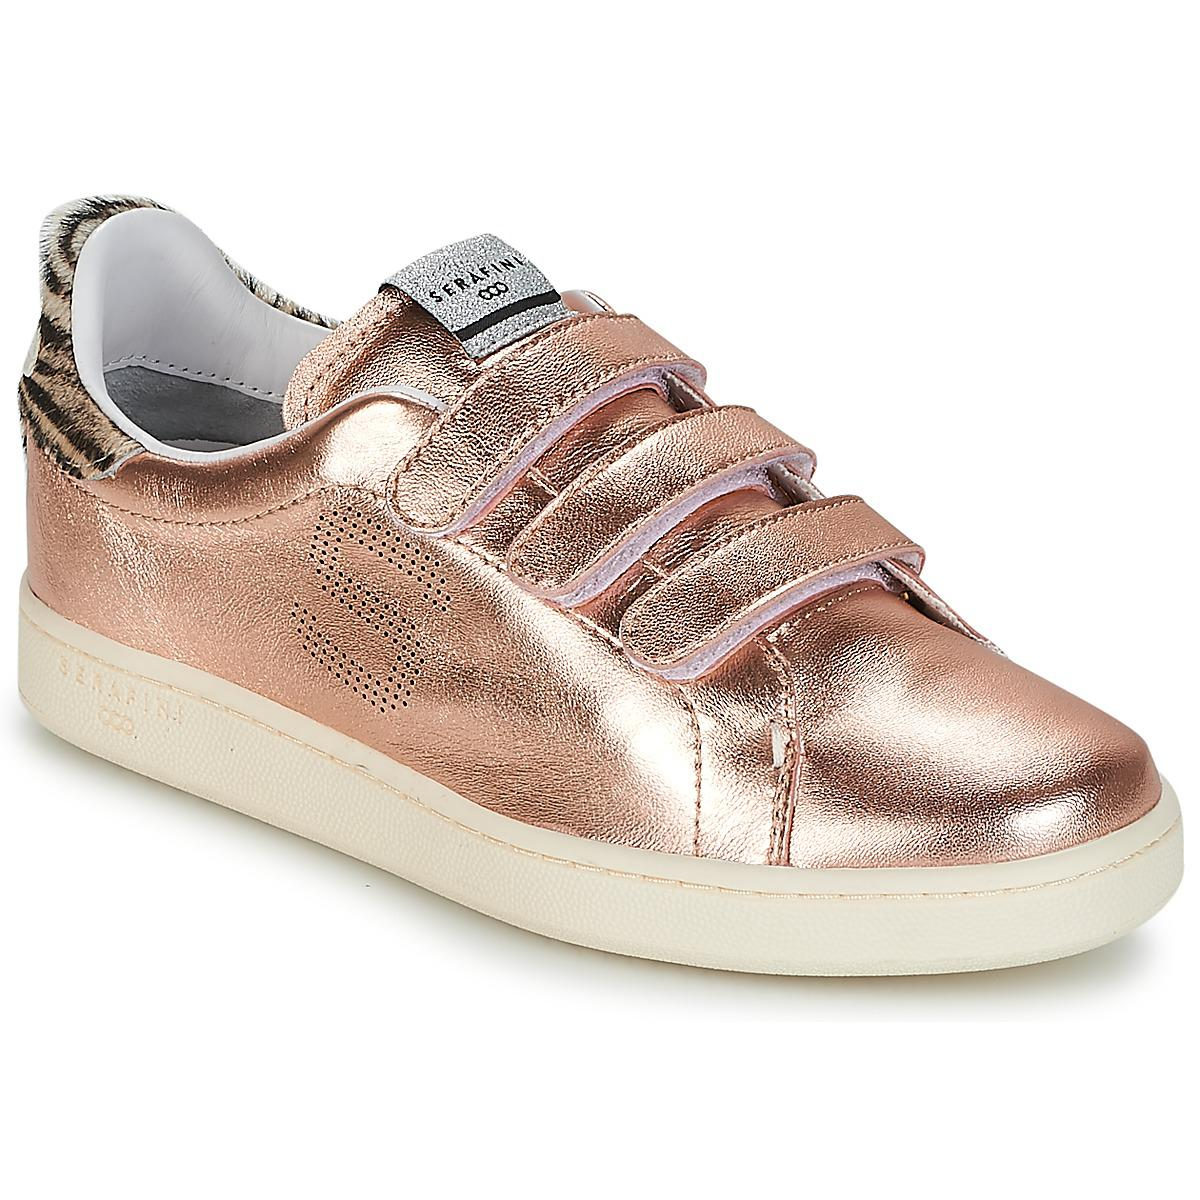 Serafini J CONNOR women's Shoes (Trainers) in Best Prices Sale Online Cheap Limited Edition NFYHwKsko3